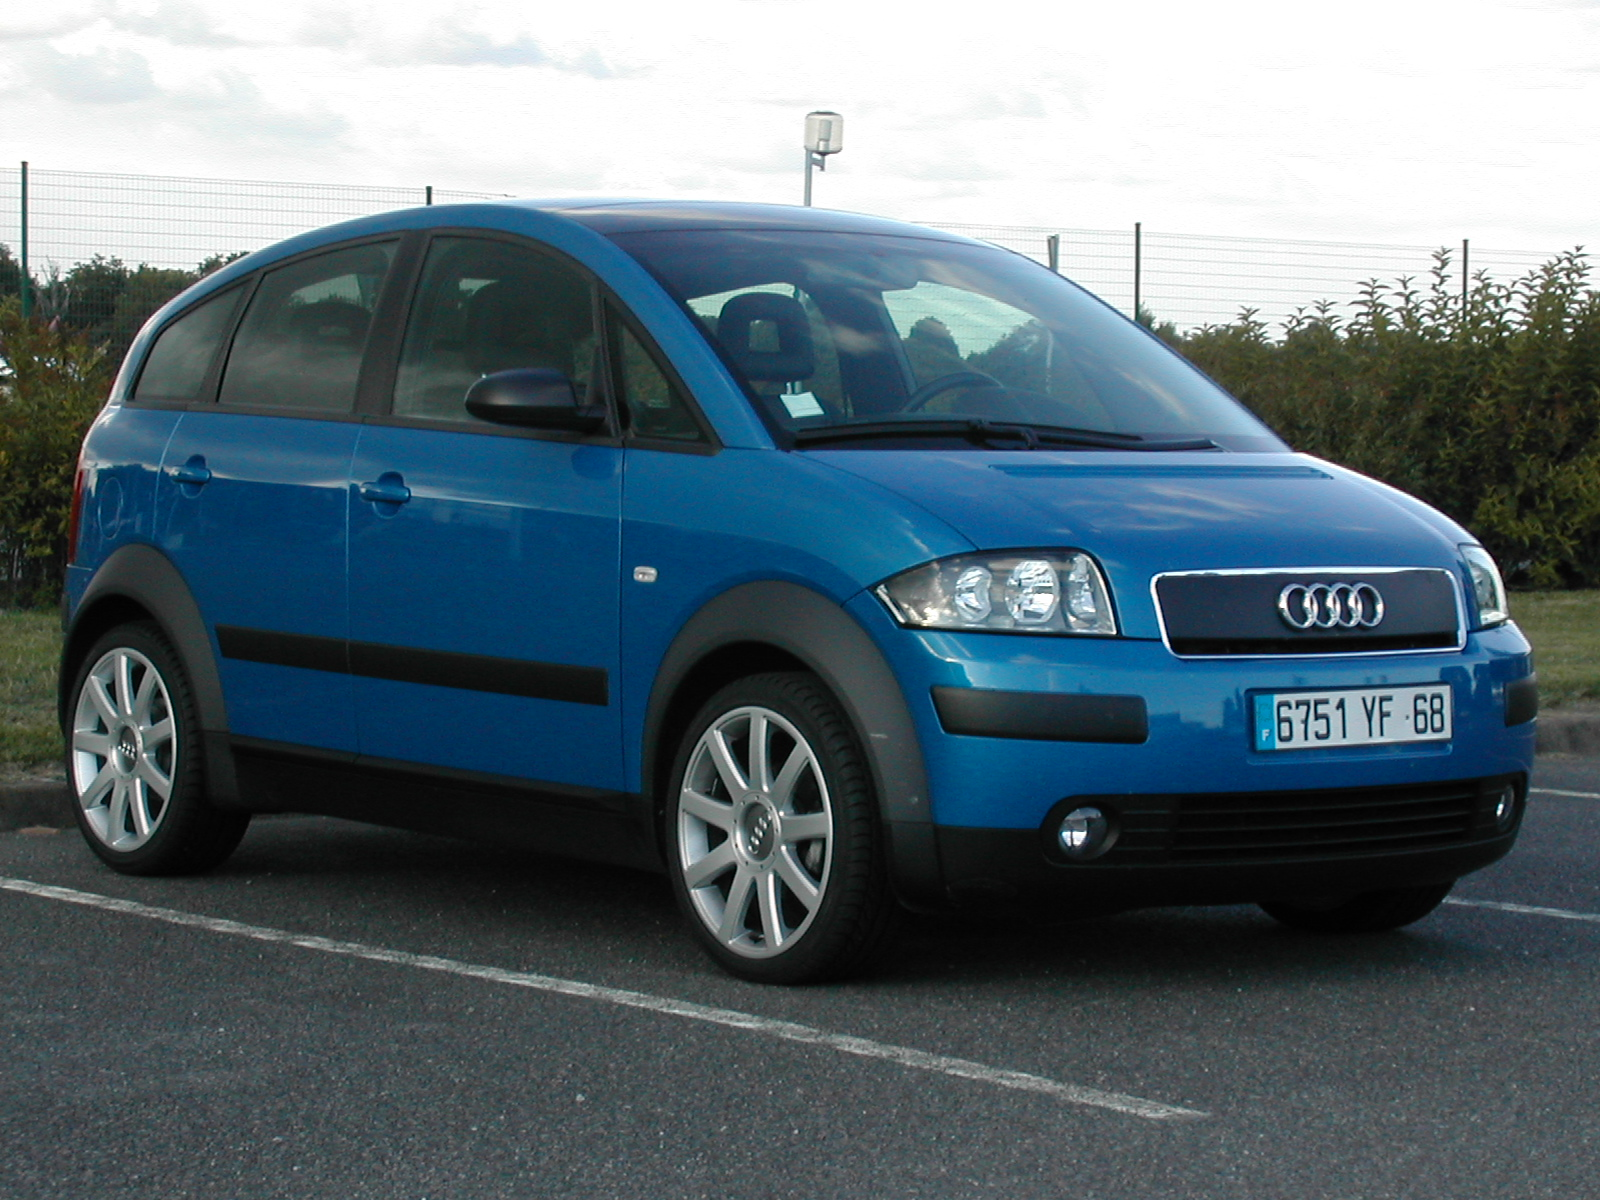 audi a2 1 2 tdi technical details history photos on better parts ltd. Black Bedroom Furniture Sets. Home Design Ideas